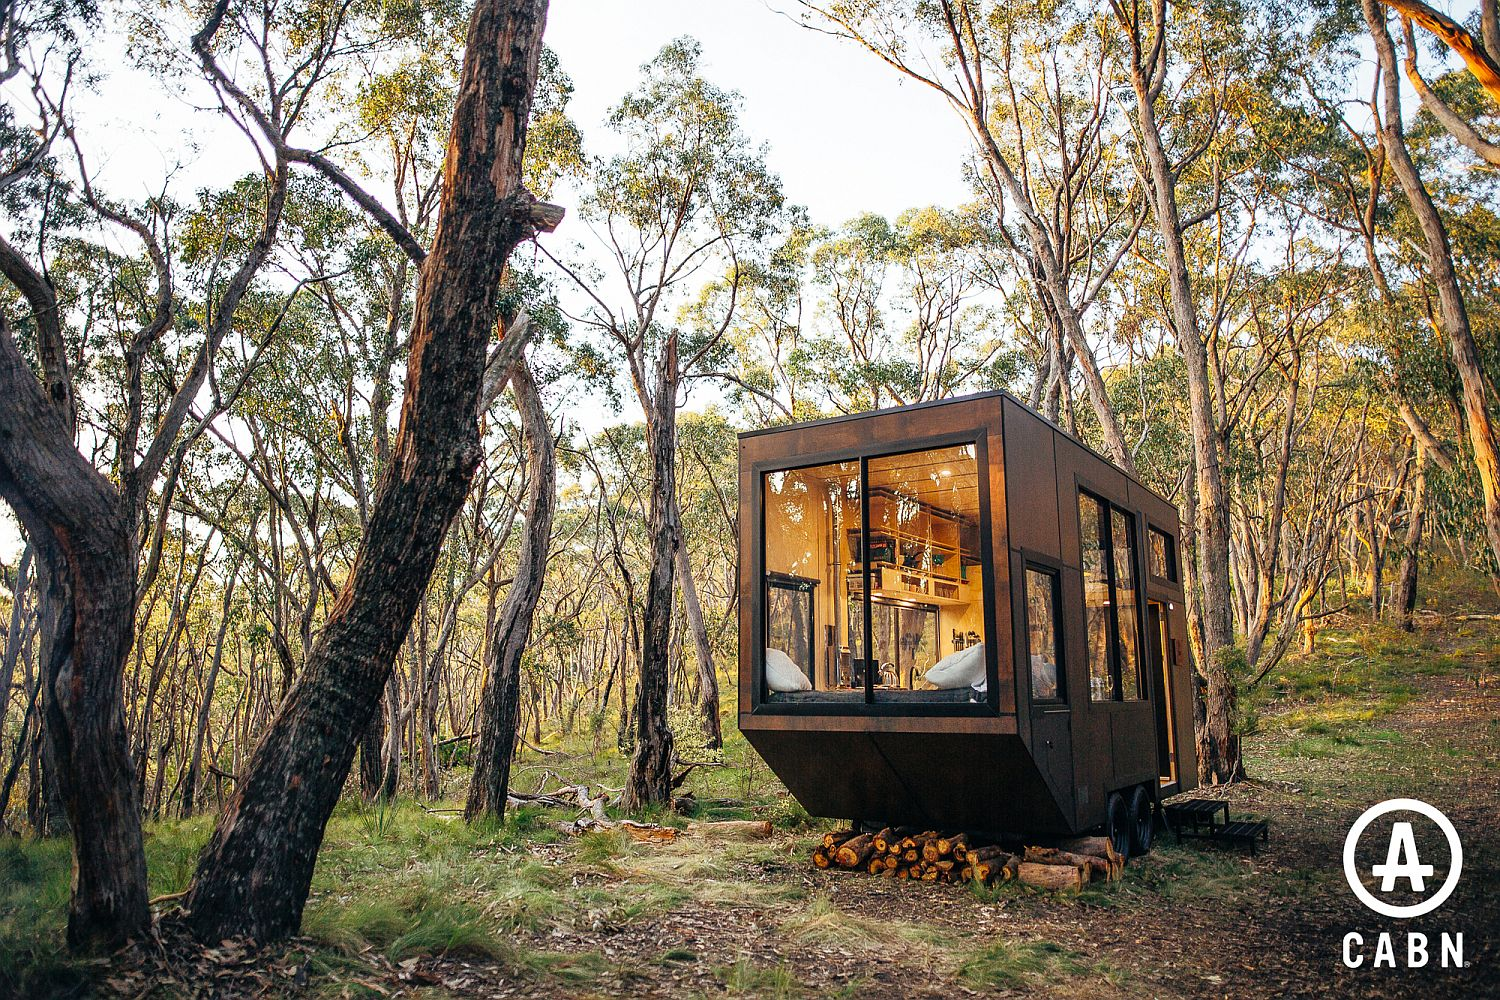 Gorgeous and planet-friendly cabin with locally sourced wood